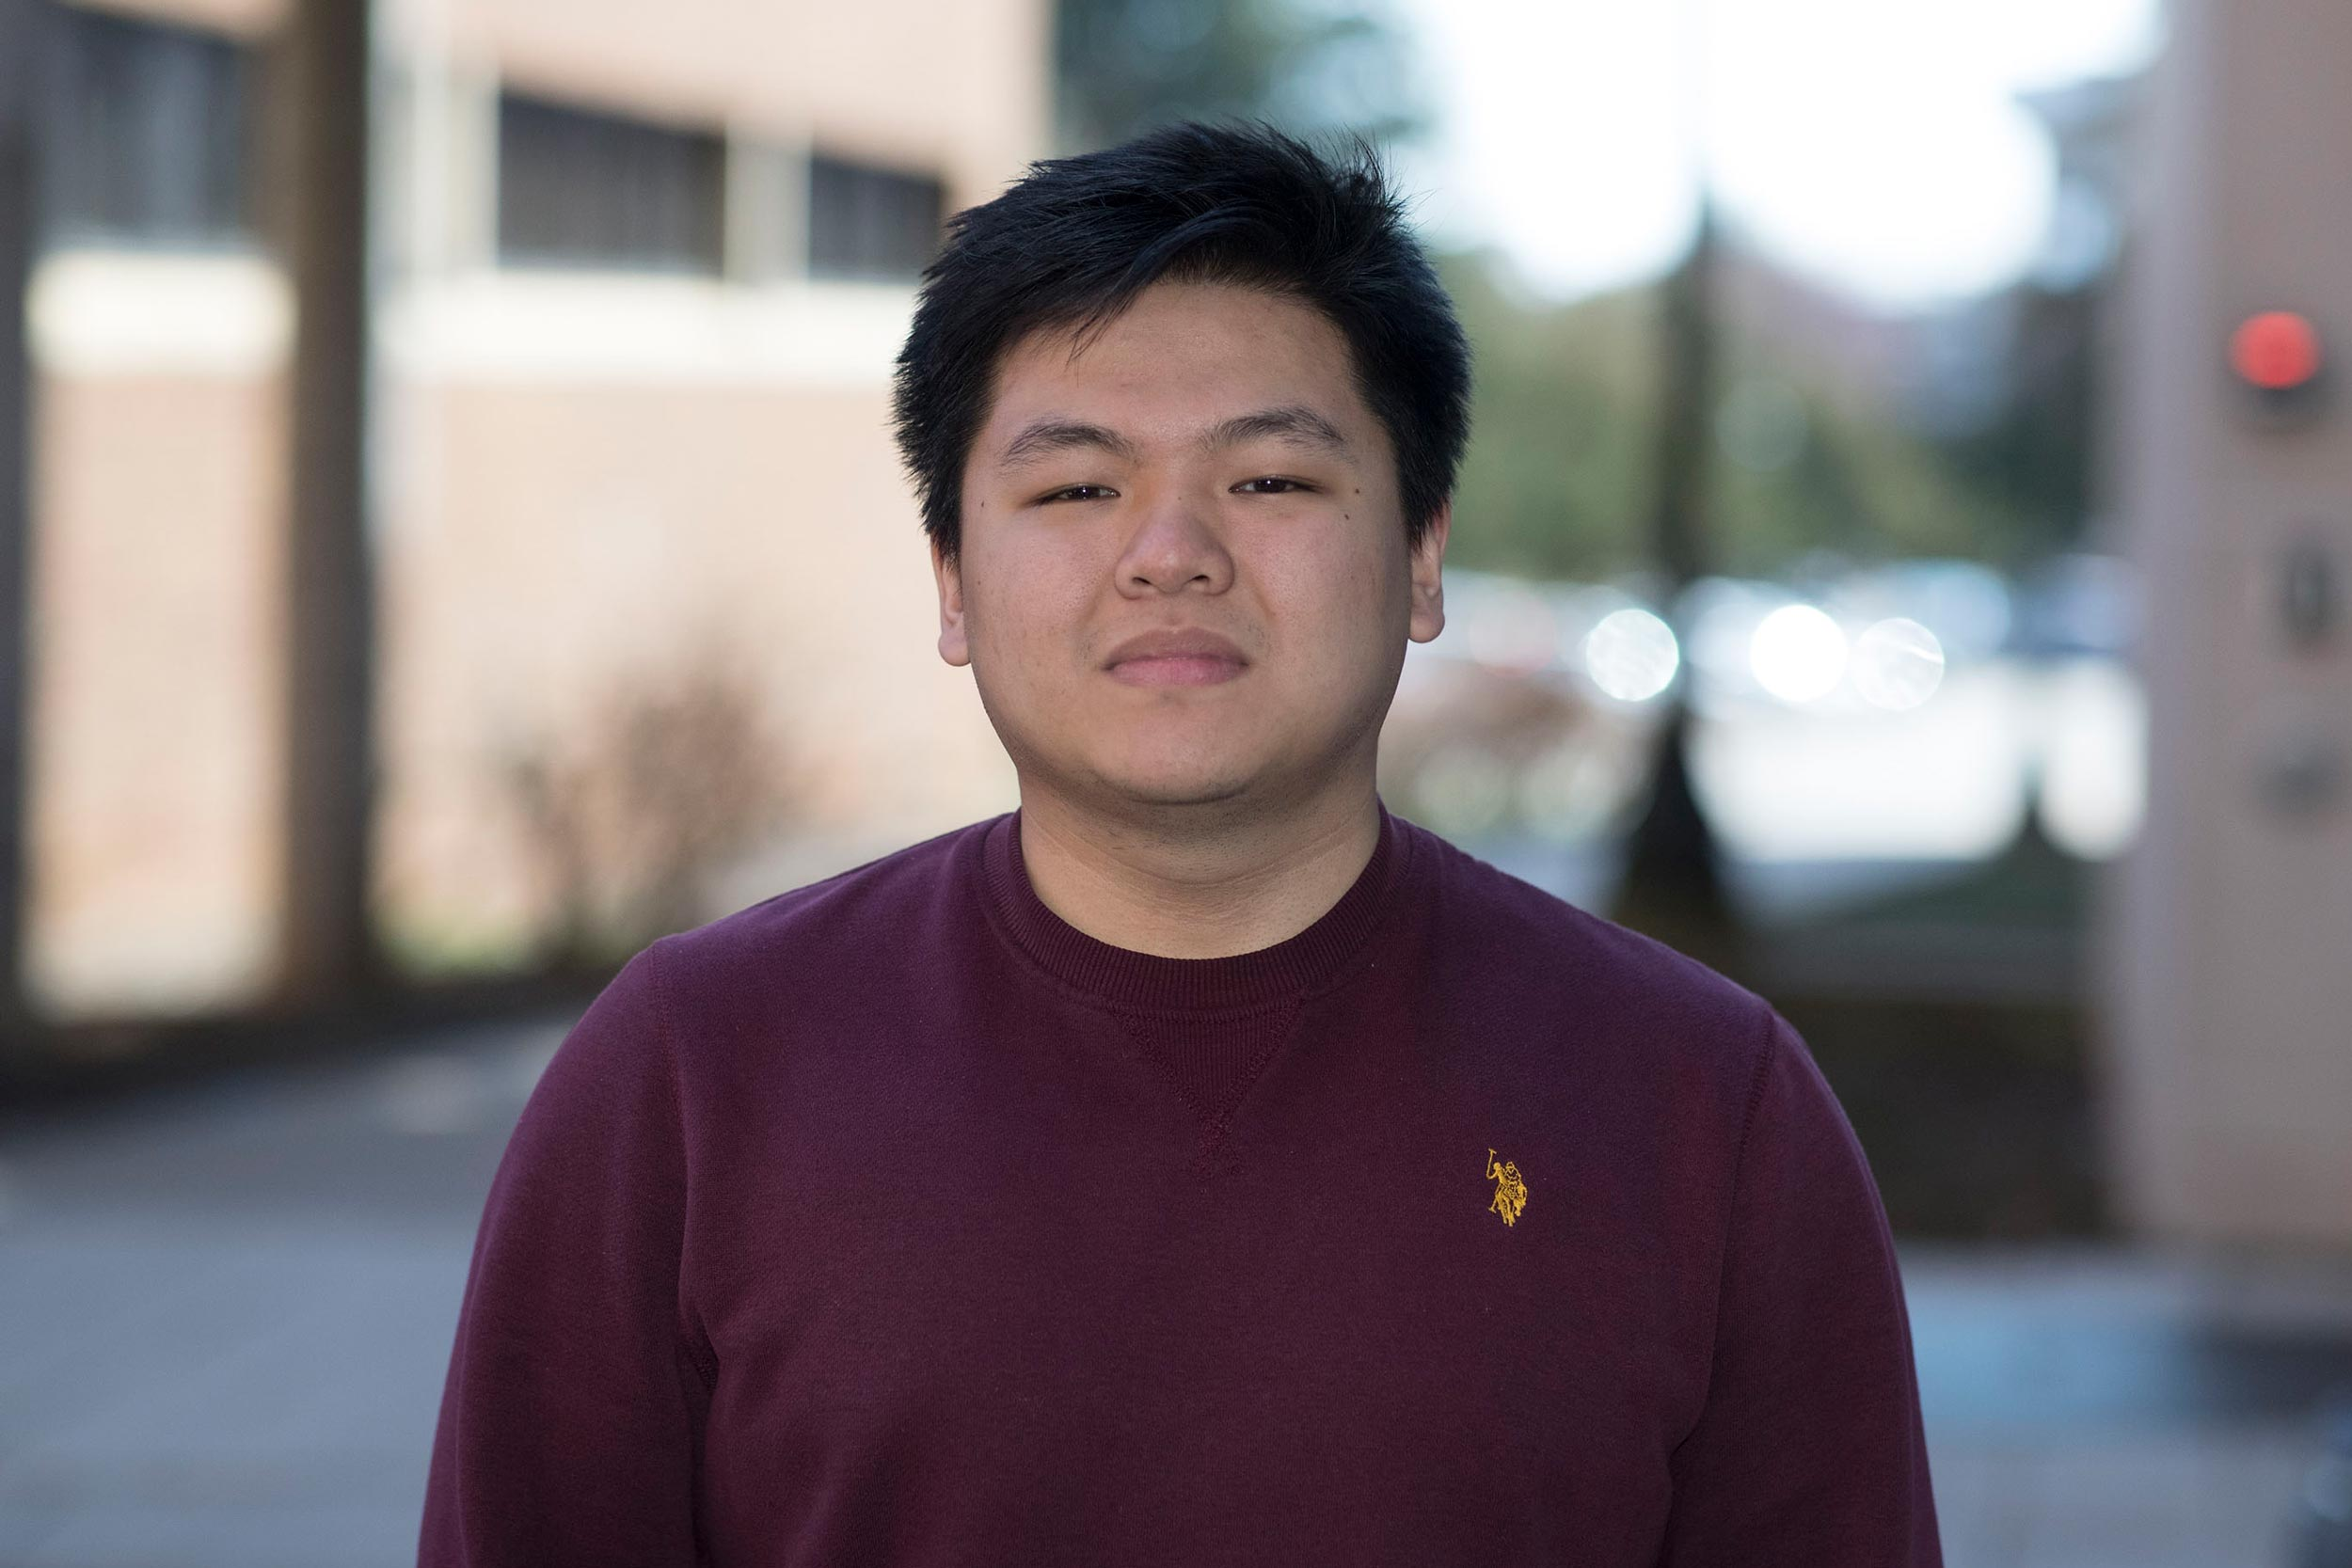 Jonathan Zheng's research has already been published in one of the nation's top scholarly journals for catalysis, and helped his mentoring professor land a National Science Foundation grant.